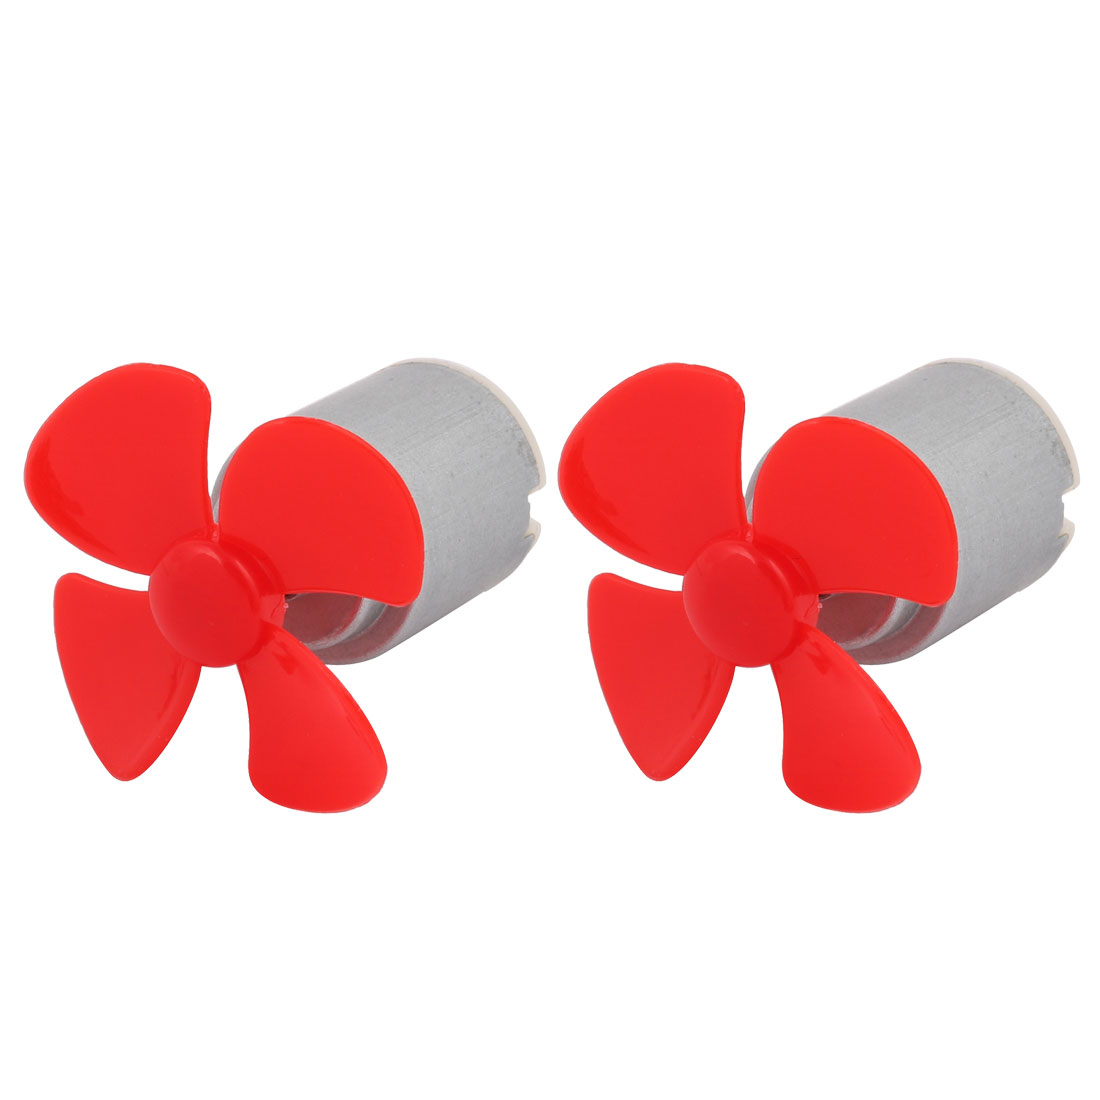 2pcs DC 3V 0.13A 13000RPM Strong Force Motor 4 Blades 40mm Red Propeller for RC Aircraft